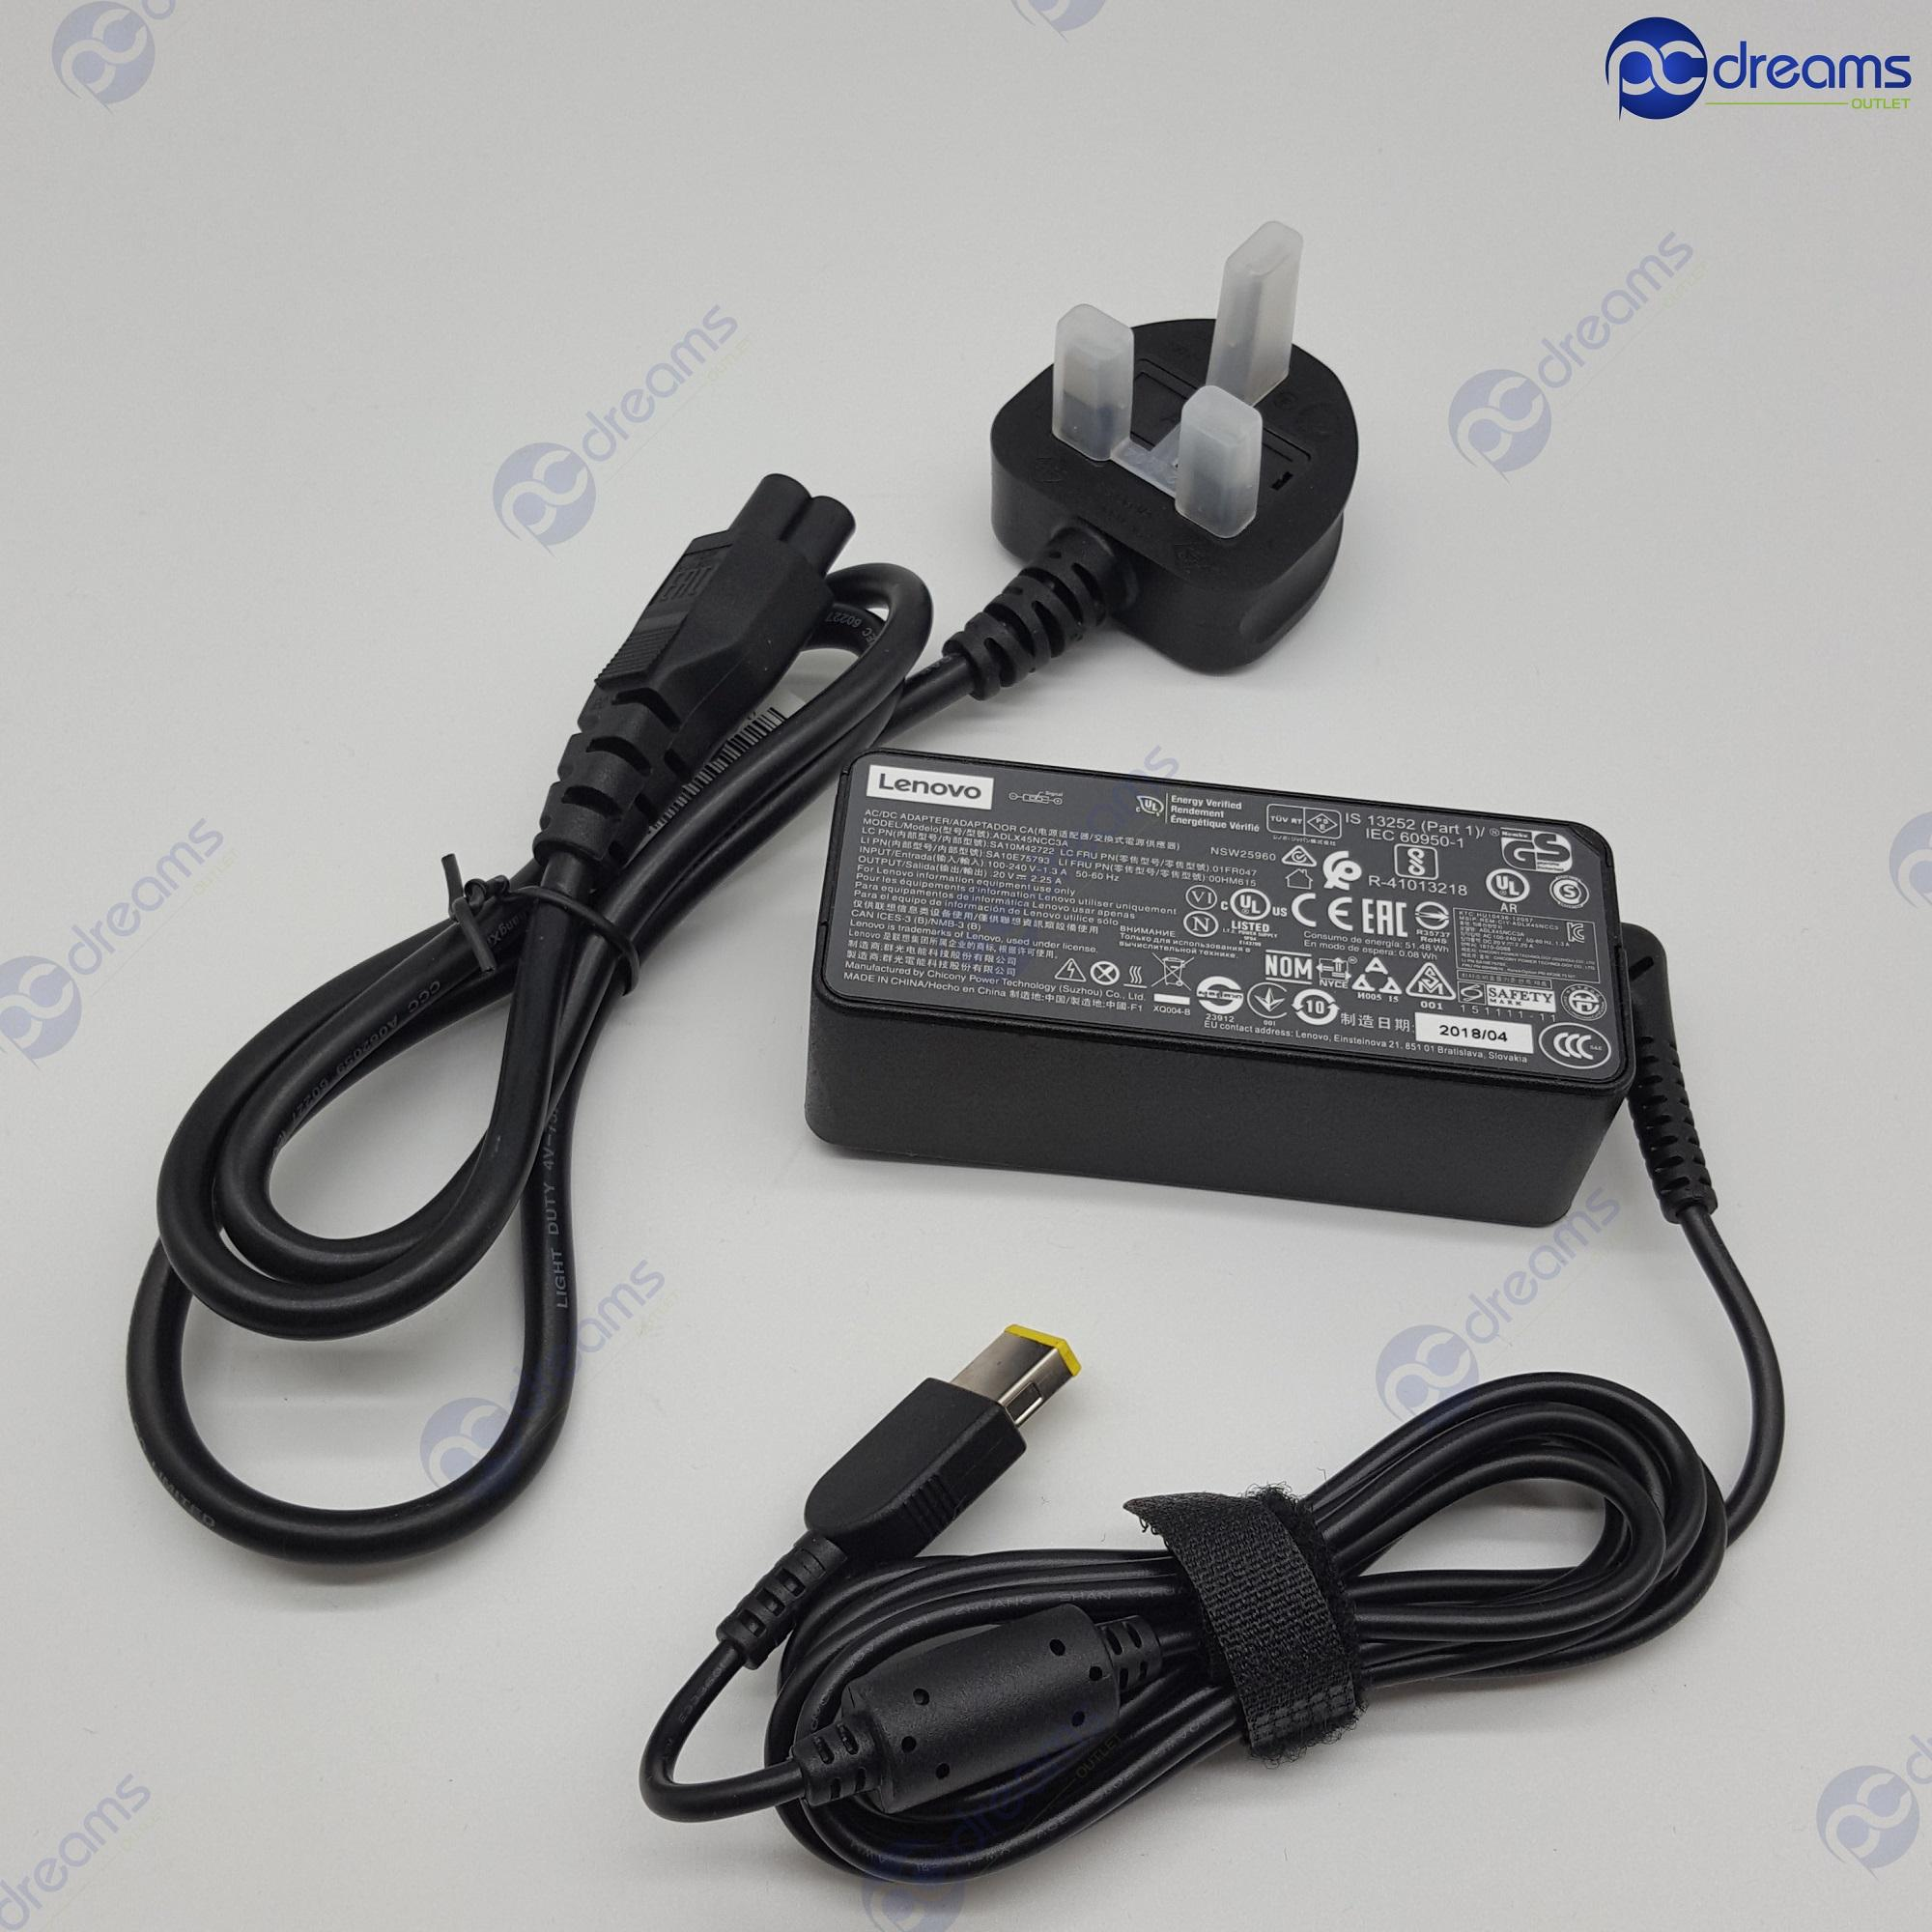 LENOVO THINKPAD 45W AC ADAPTER (SLIM TIP)  [Brand New]